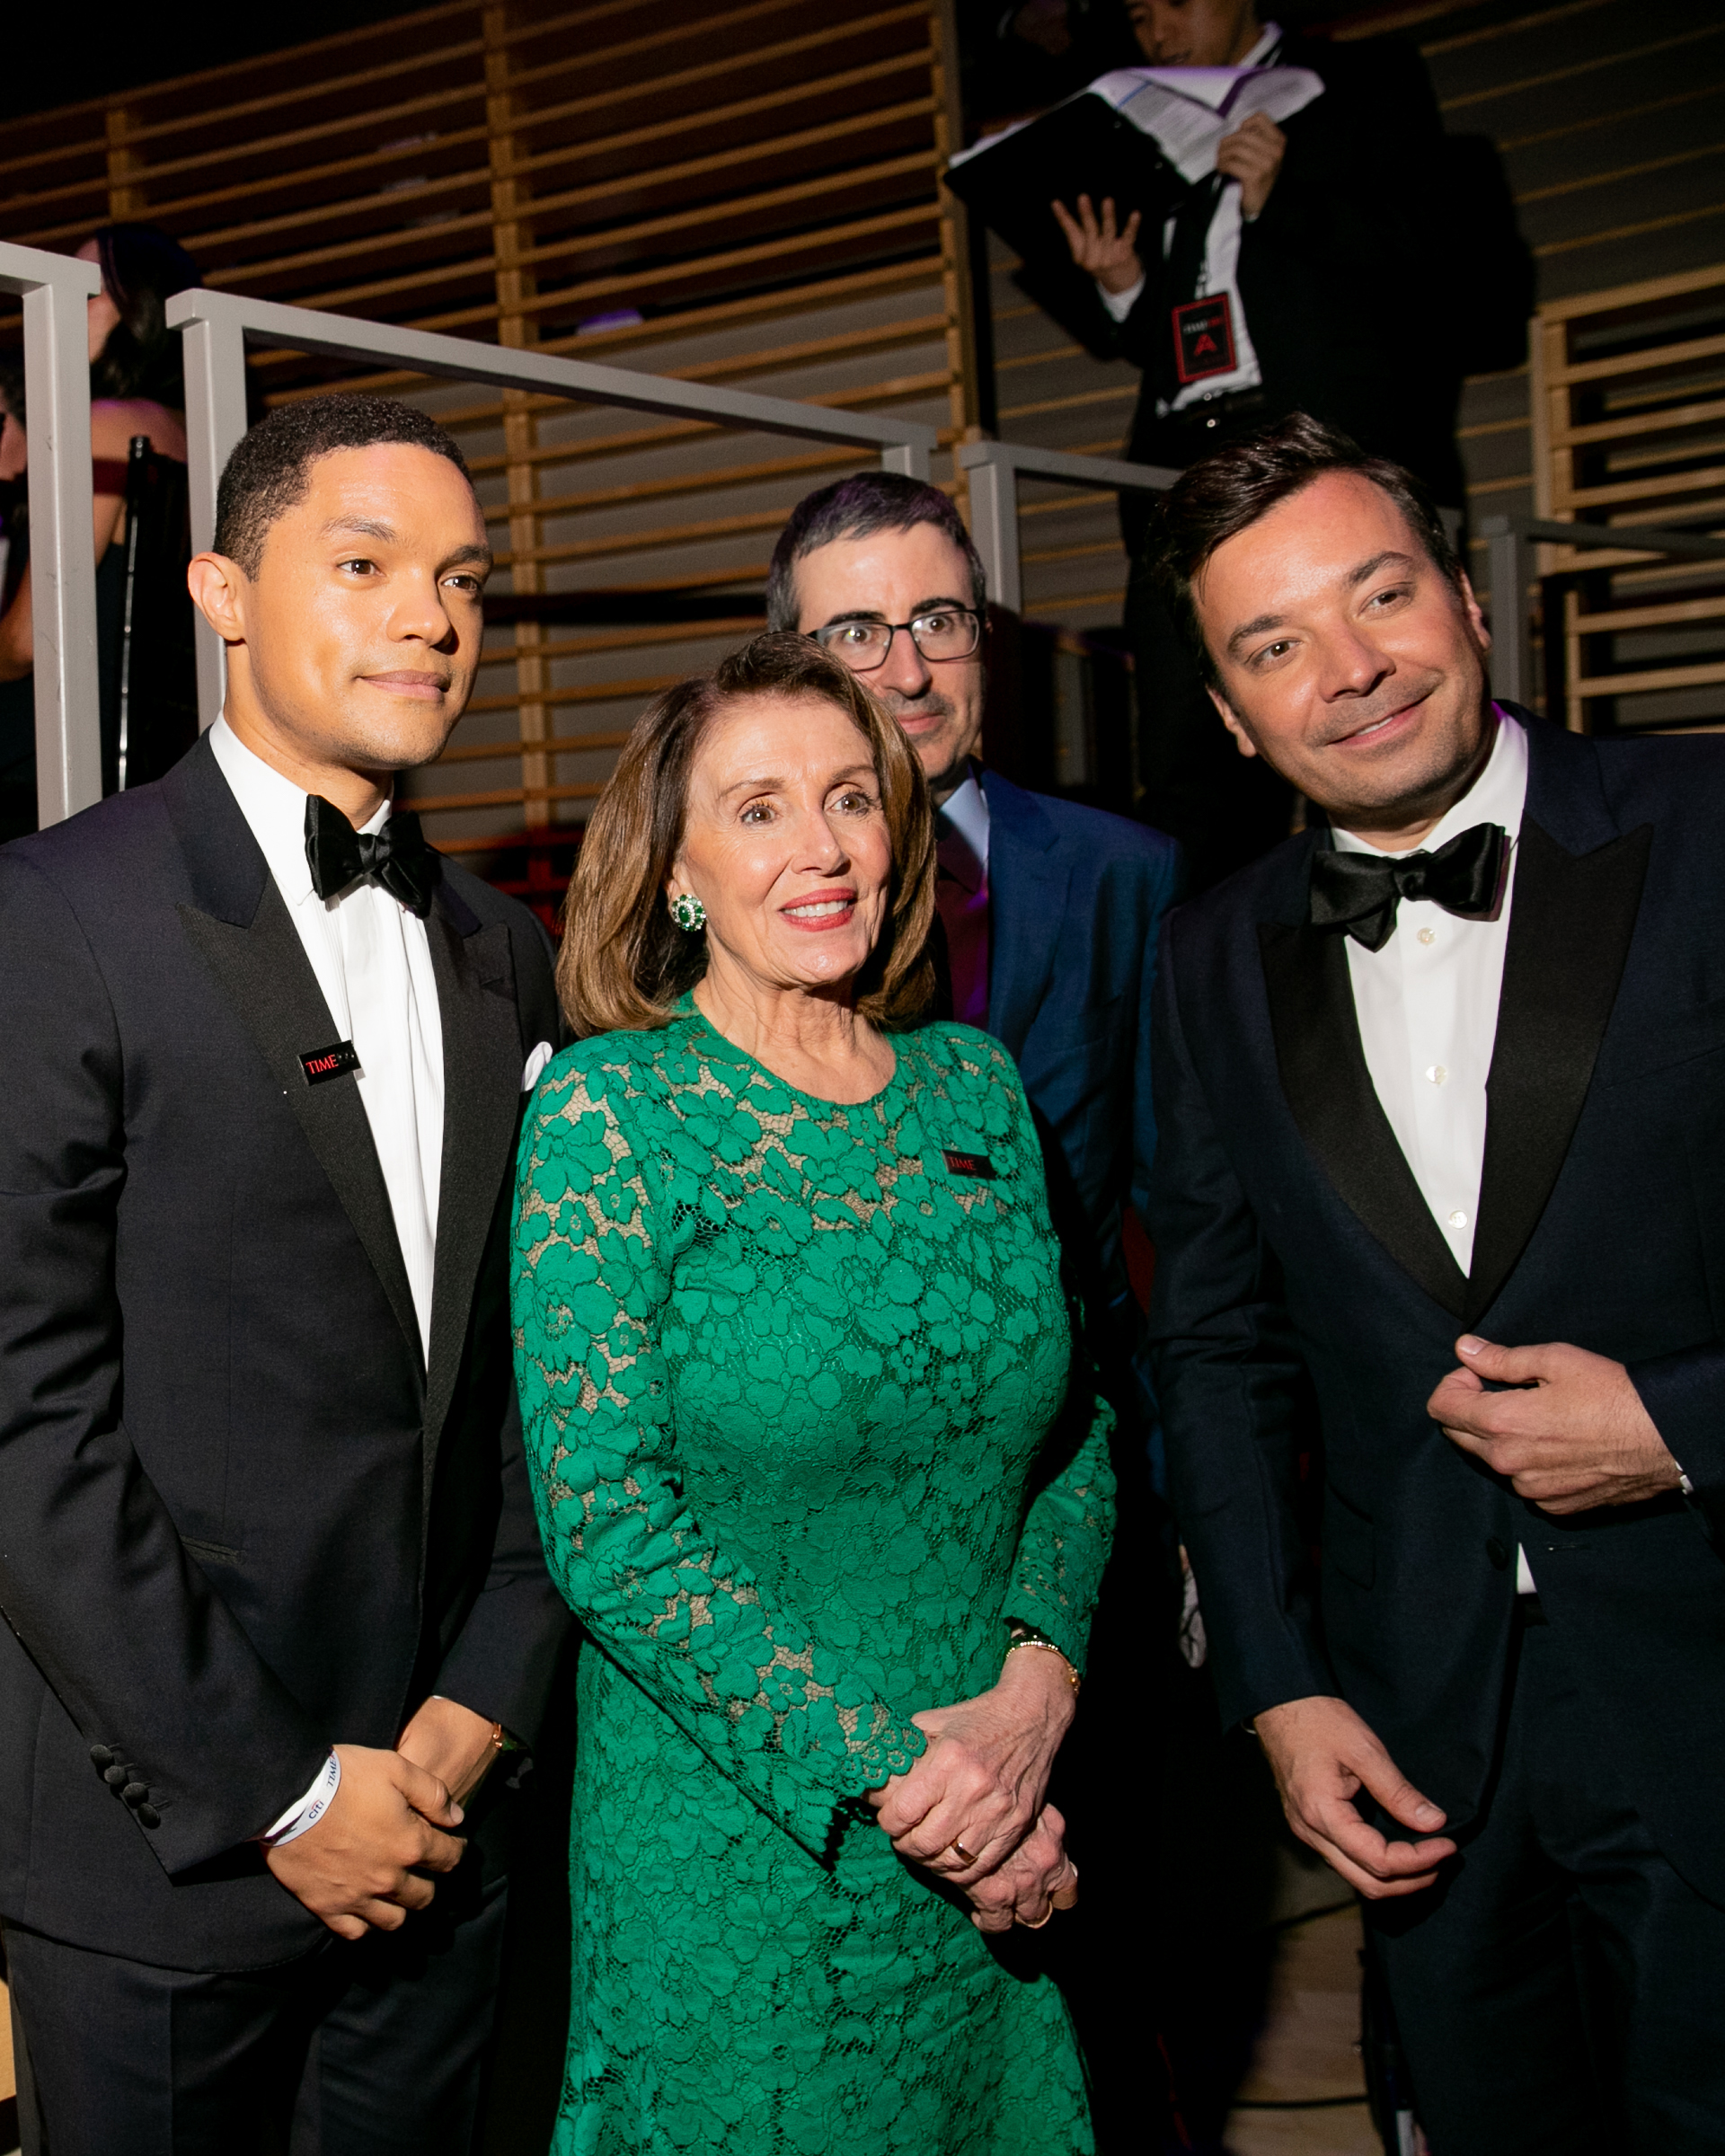 Trevor Noah, Nancy Pelosi, John Oliver and Jimmy Fallon at the Time 100 Gala at Jazz at Lincoln Center in New York City on April 23, 2019.